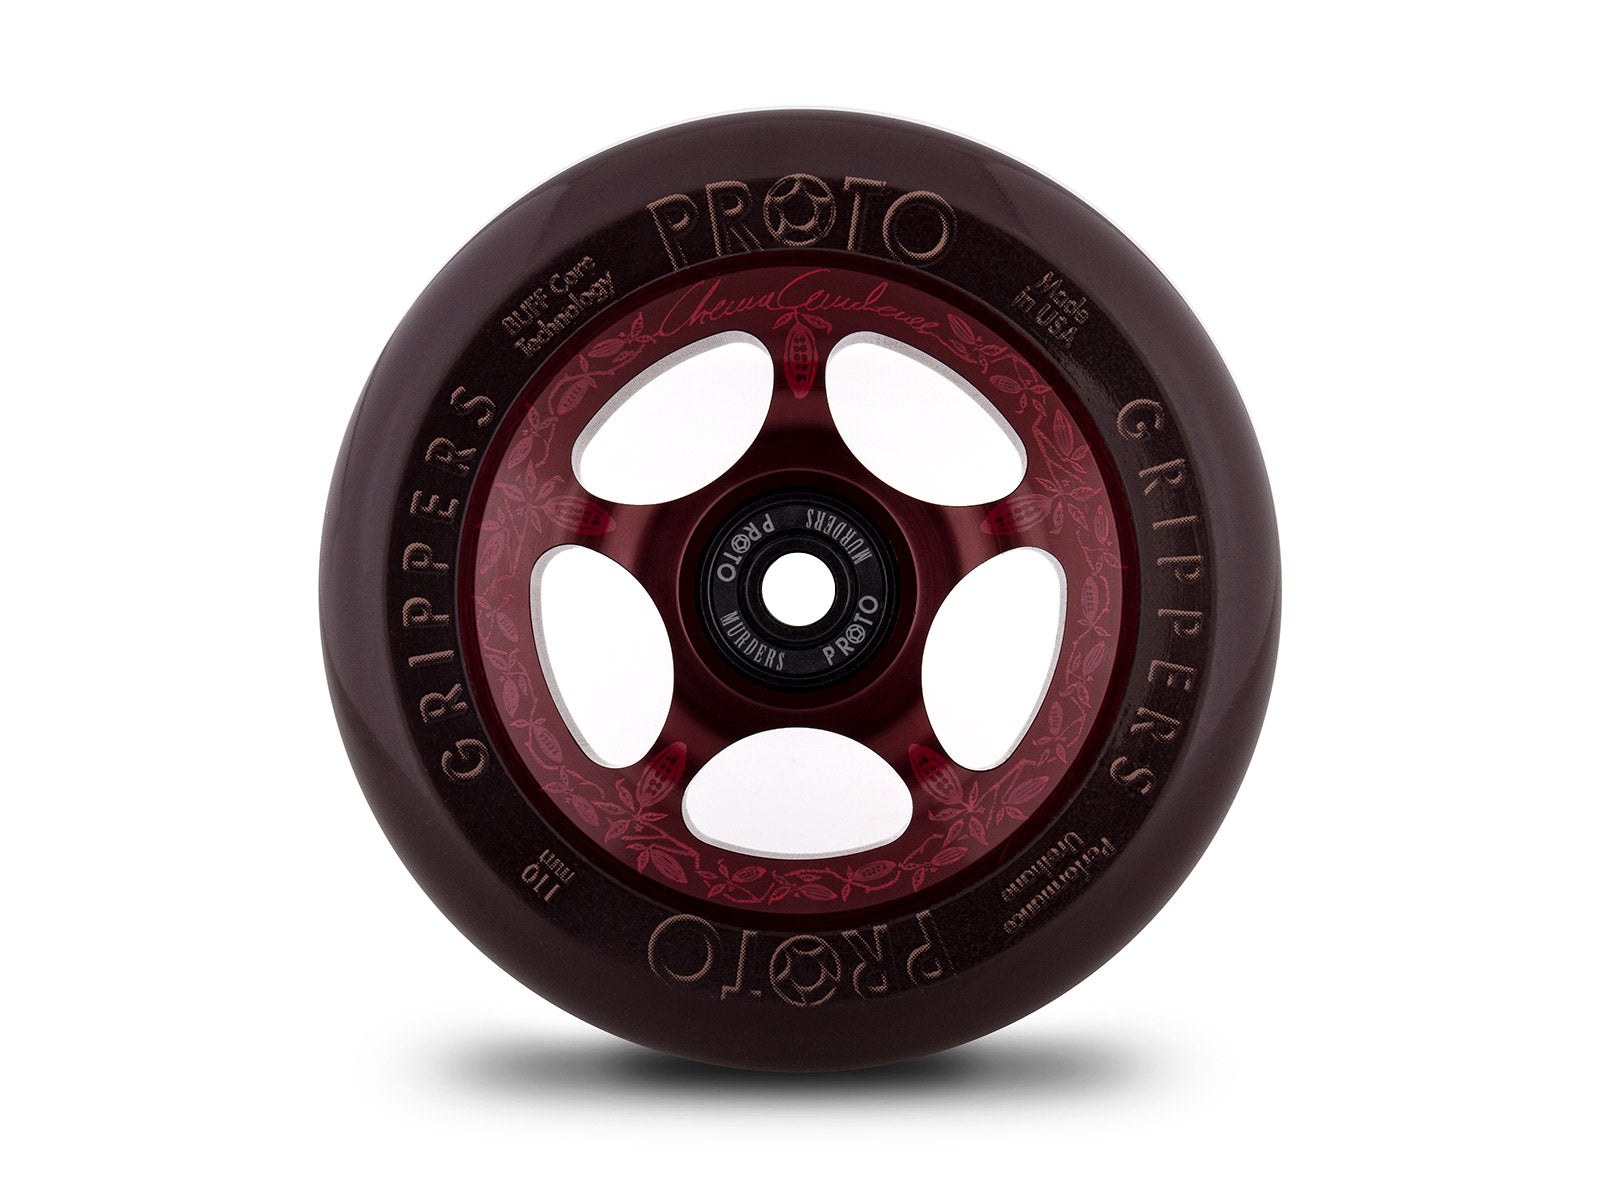 Proto Grippers Wheels (x2)